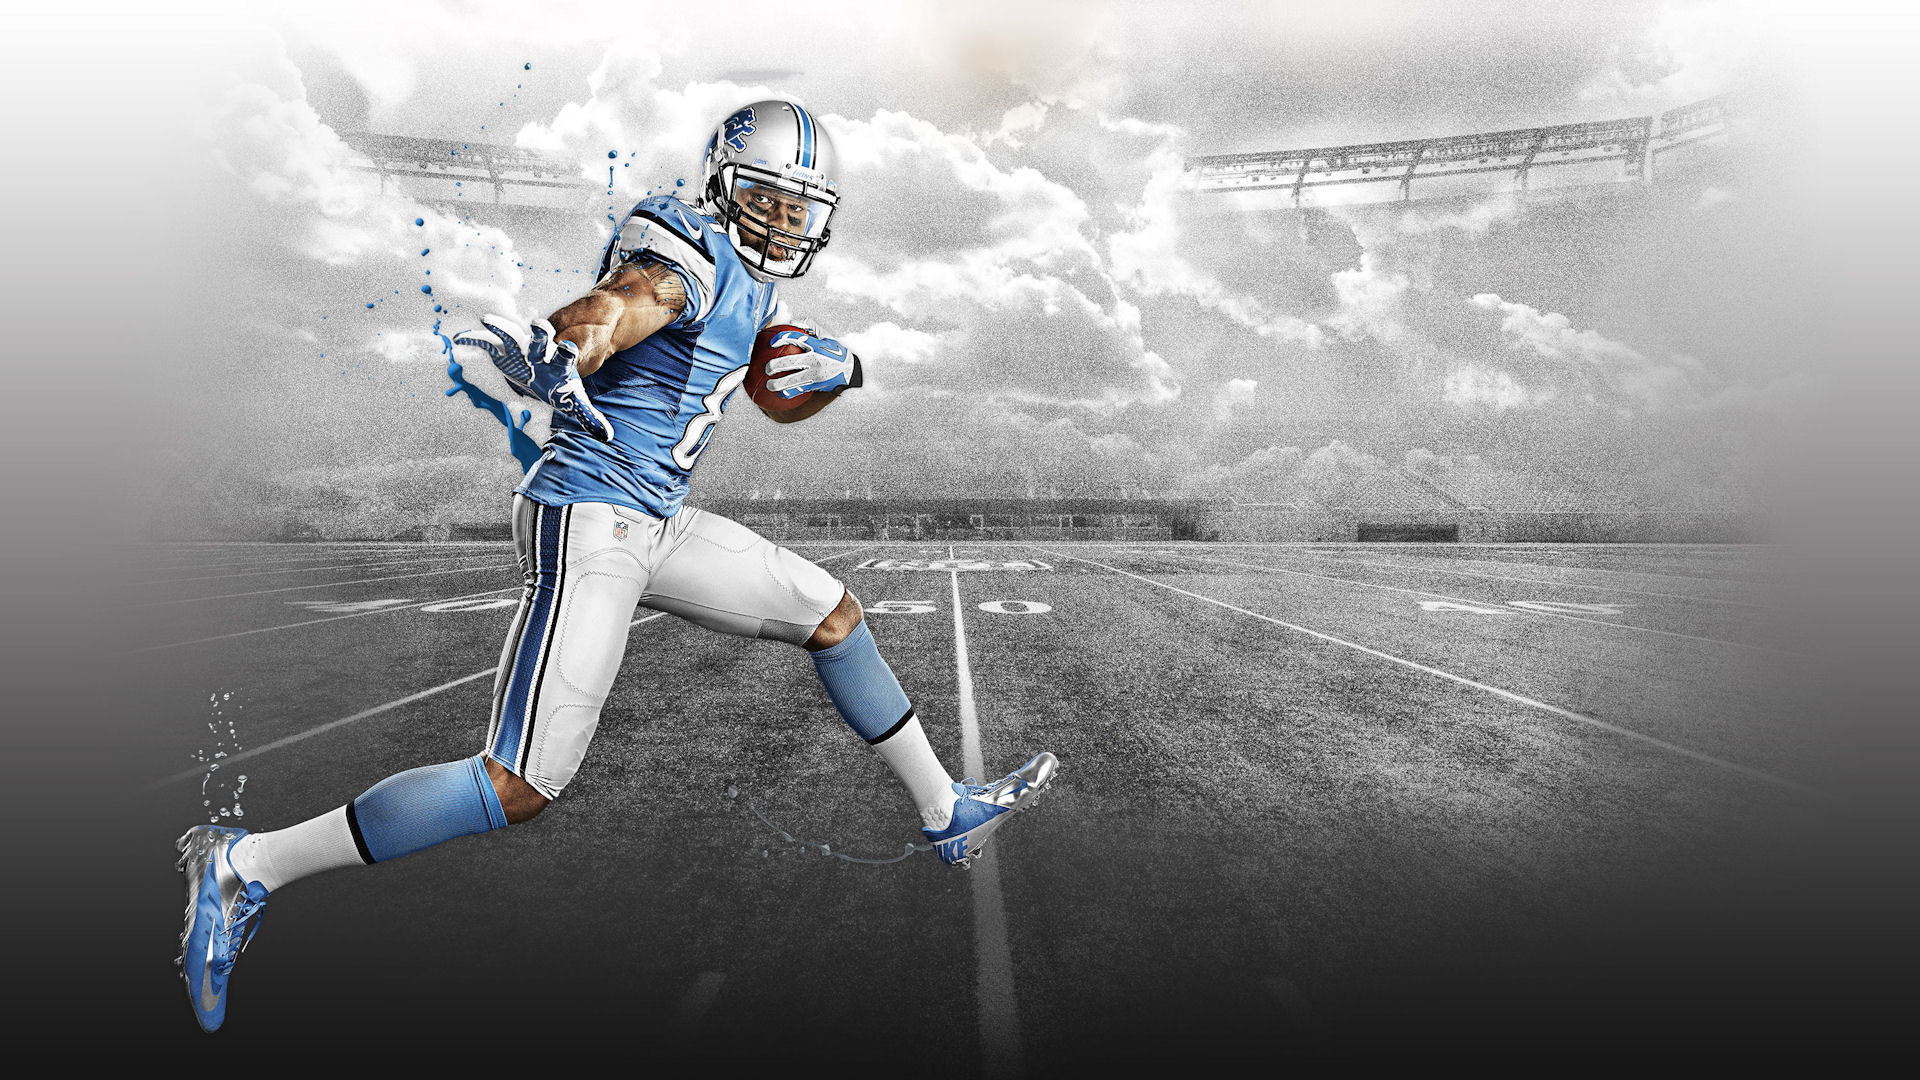 Cool NFL Players Wallpapers